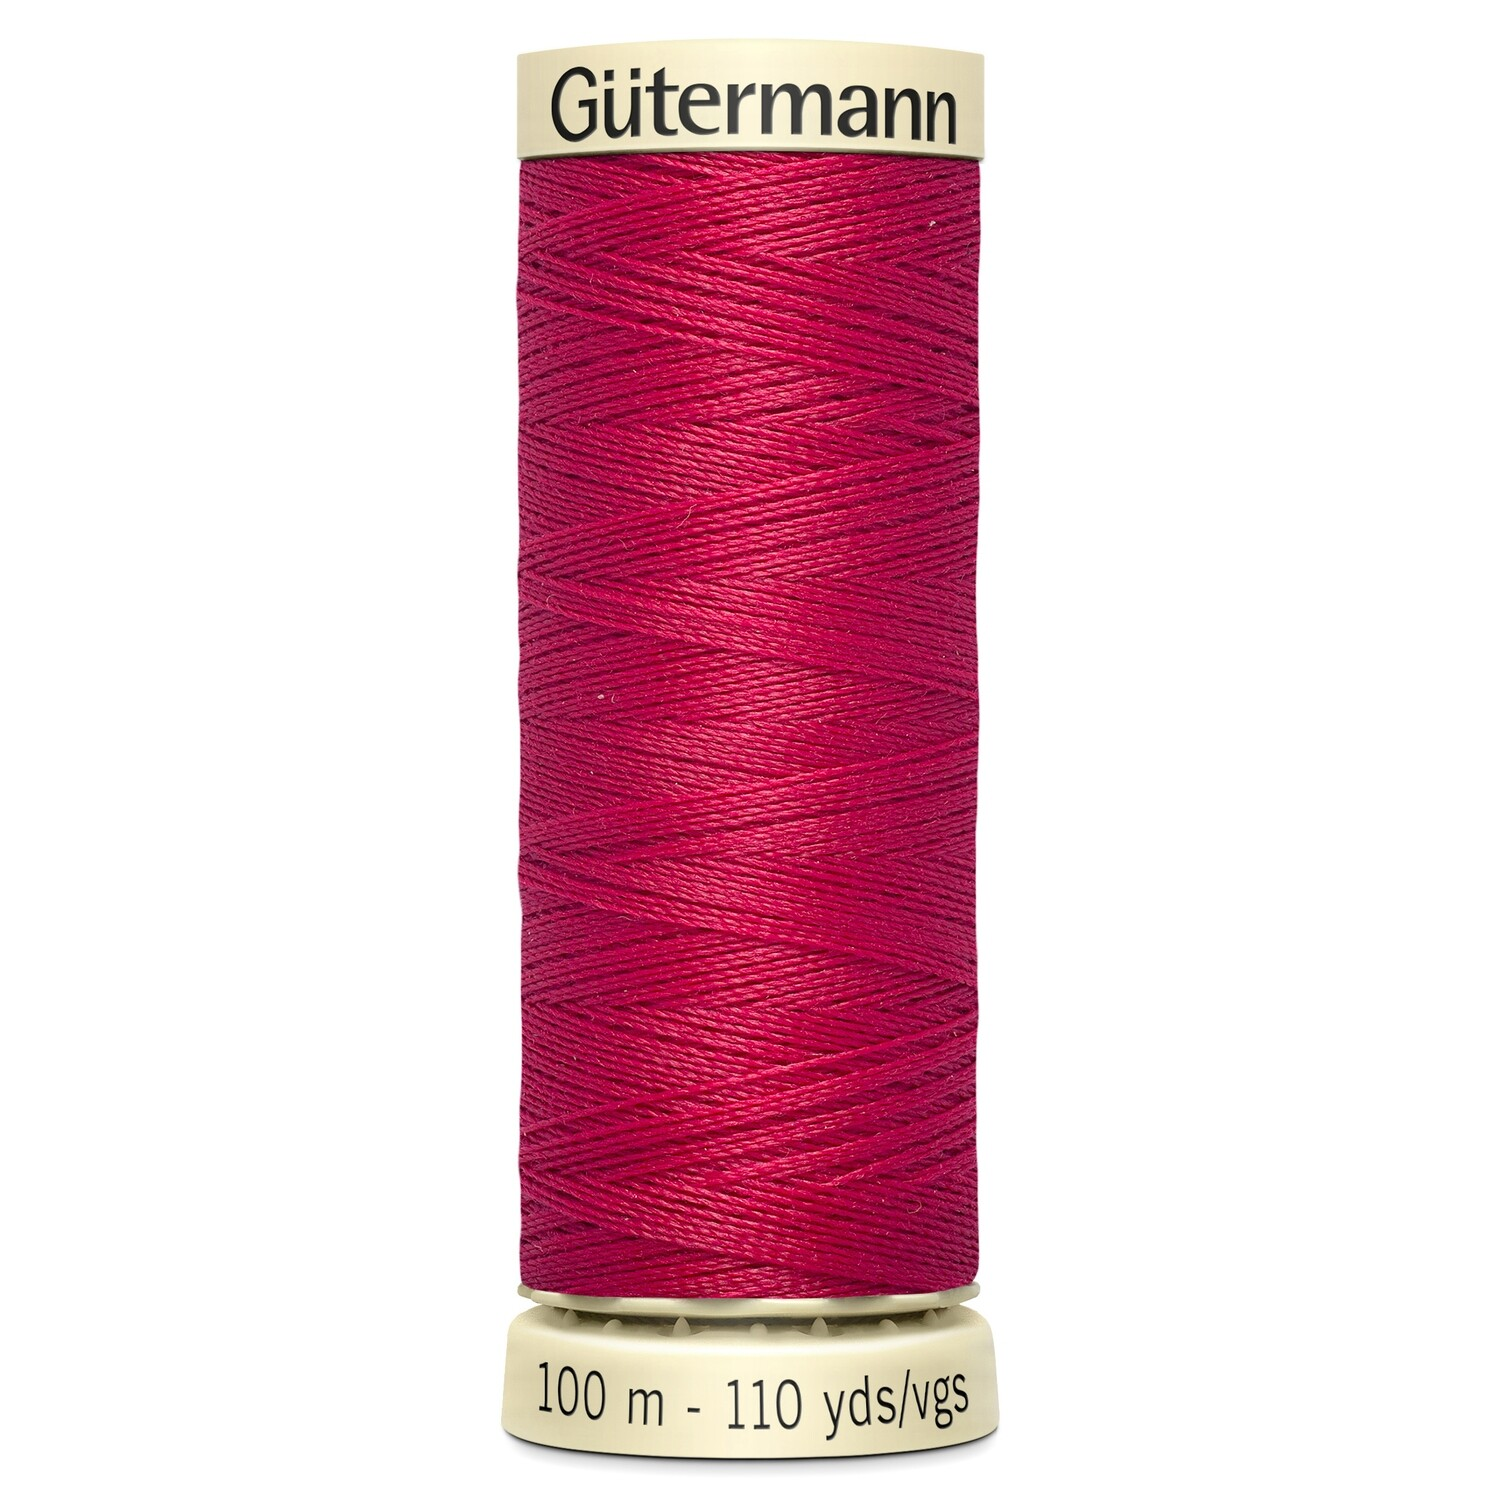 Gutermann Sew-All thread 909